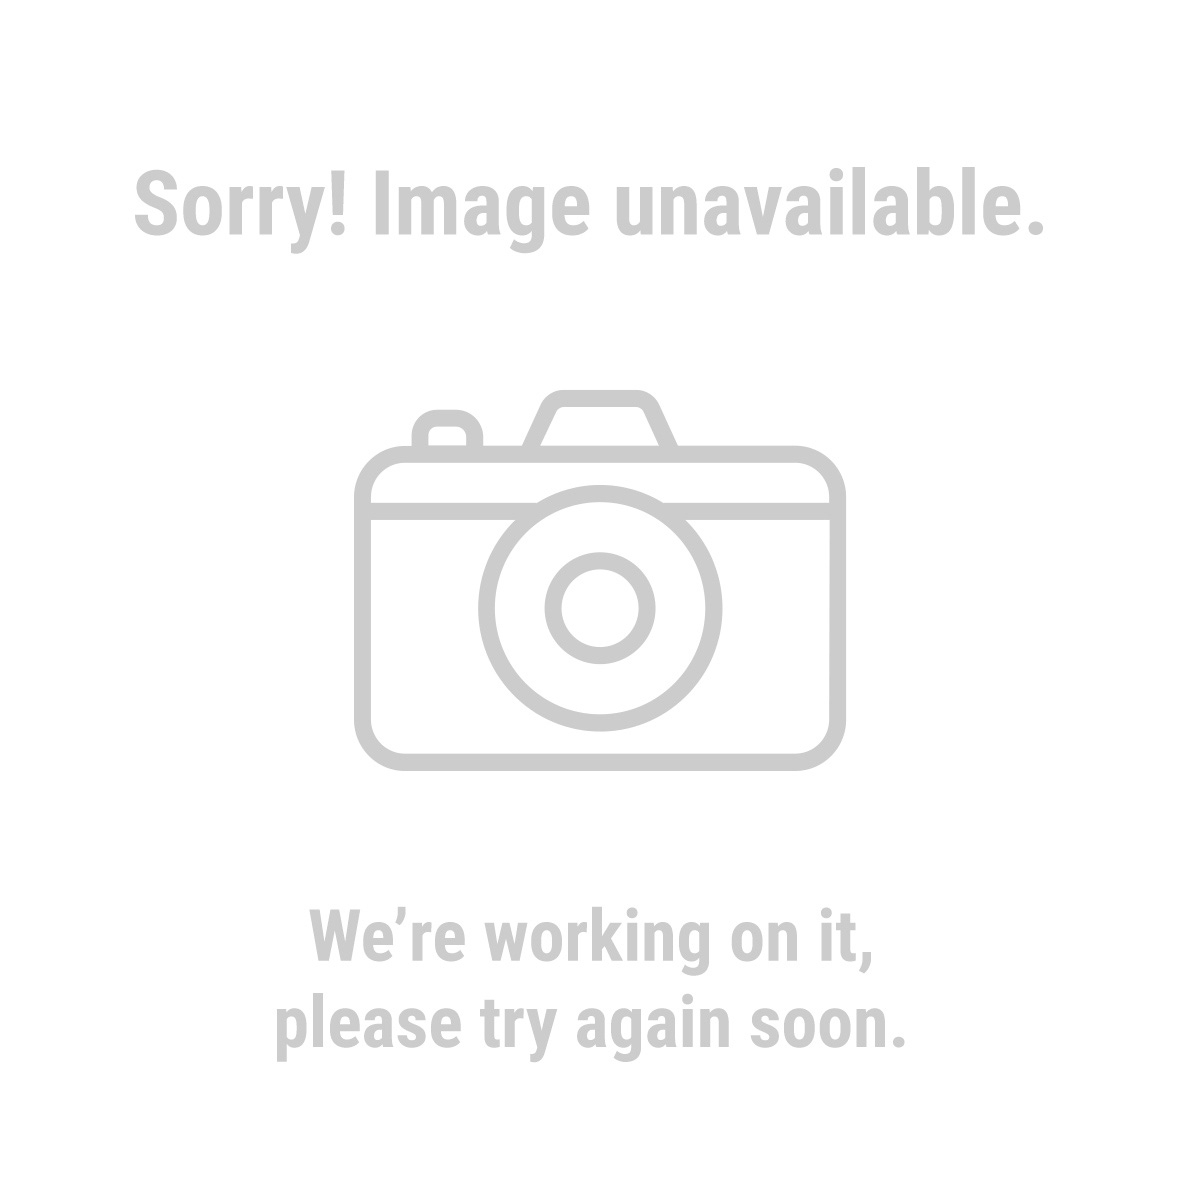 Storehouse® 62720 24 in. Heavy Duty Cable Ties 10 Pk